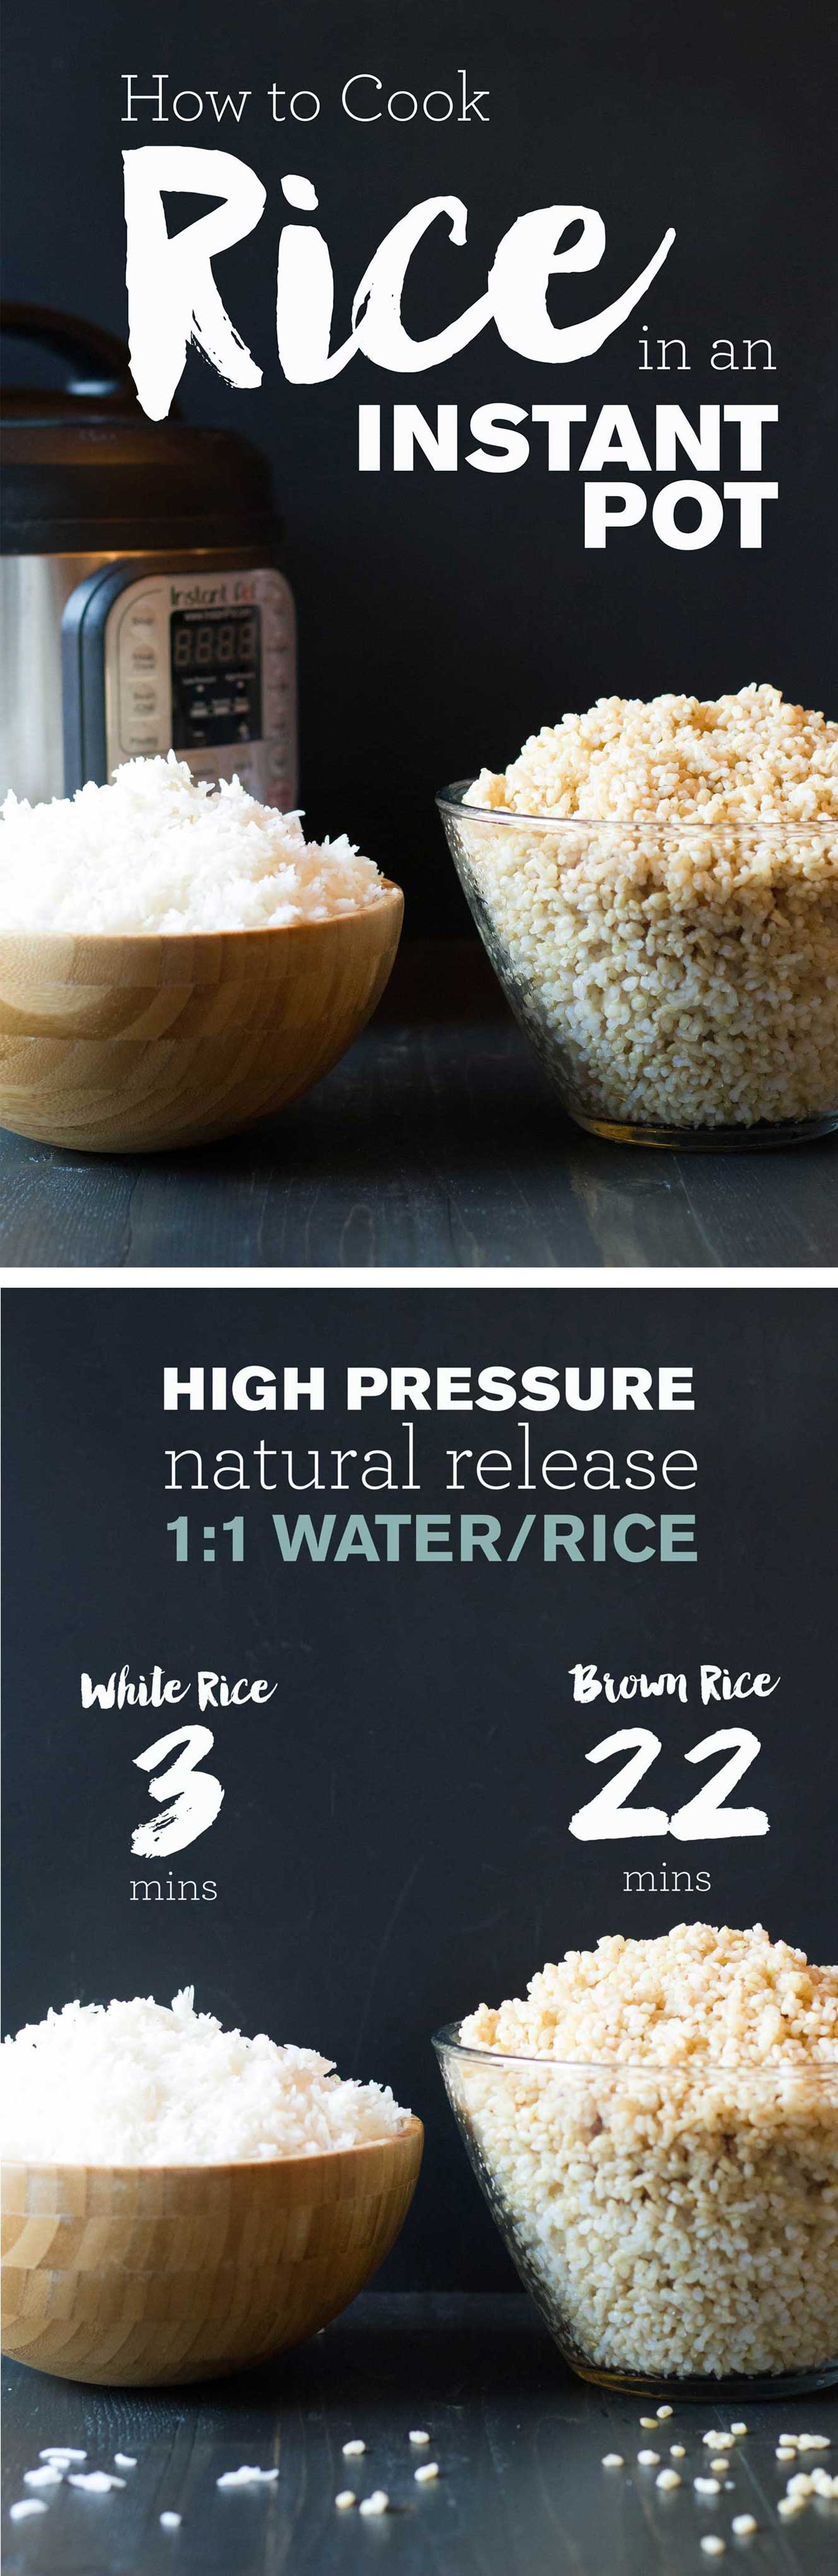 Best way to cook healthy brown rice in instant pot lux